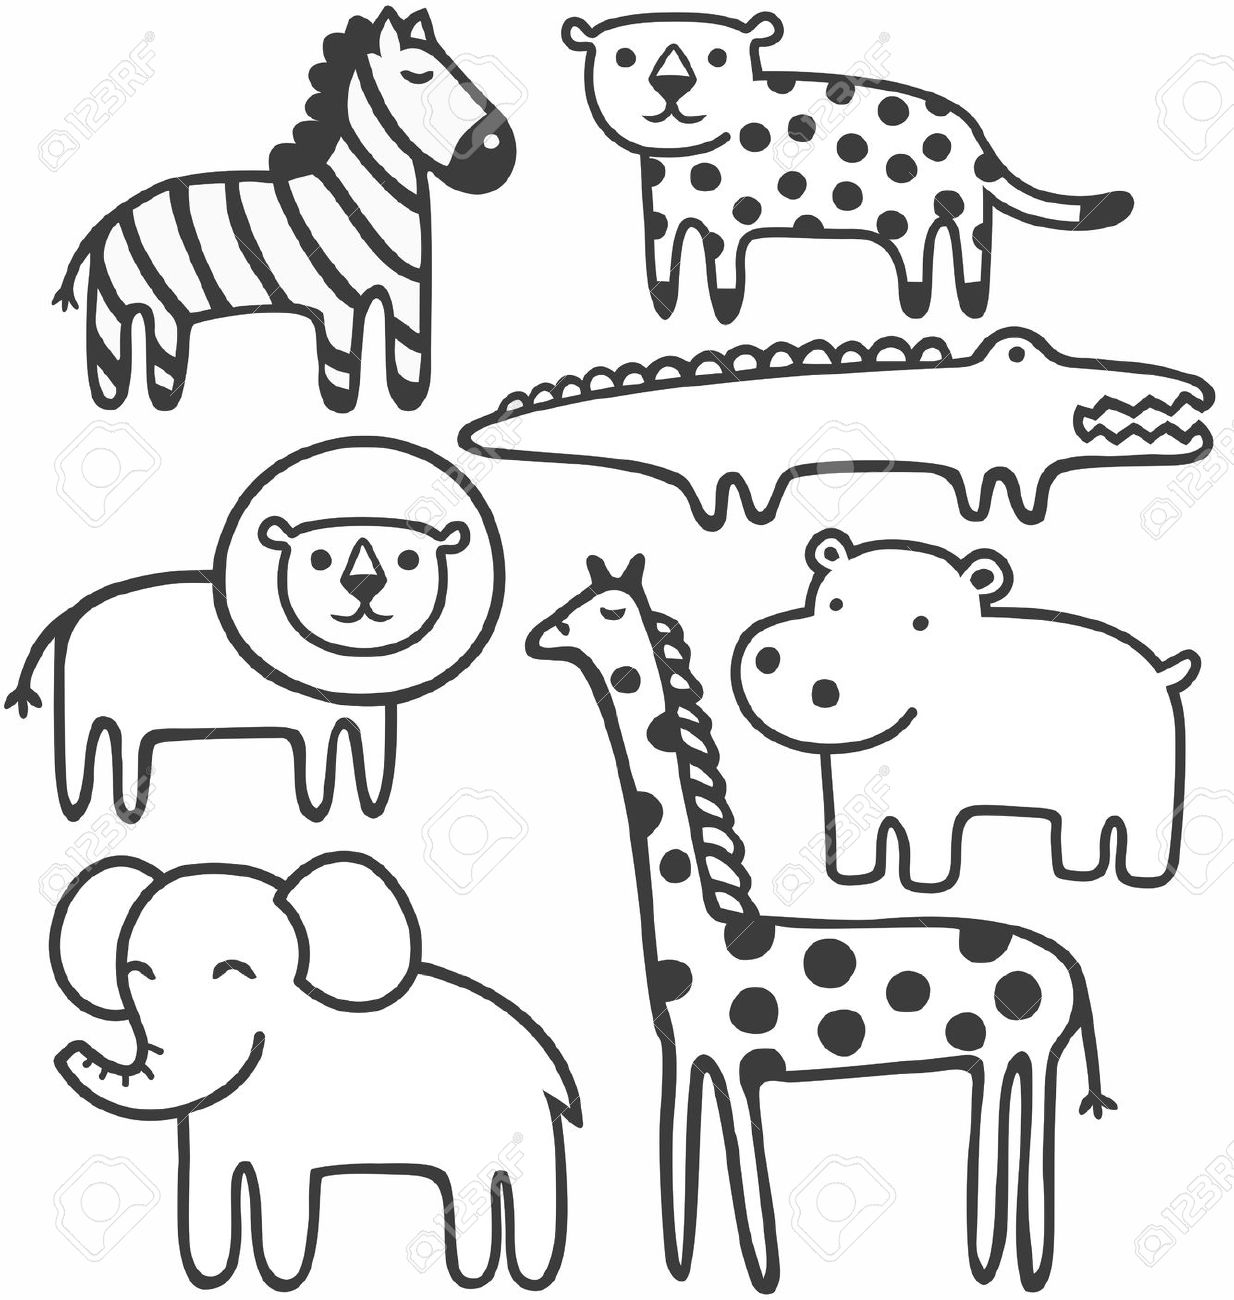 coloring zoo animals clipart black and white zoo animals clipart black and white 1 clipart station clipart white coloring zoo animals black and